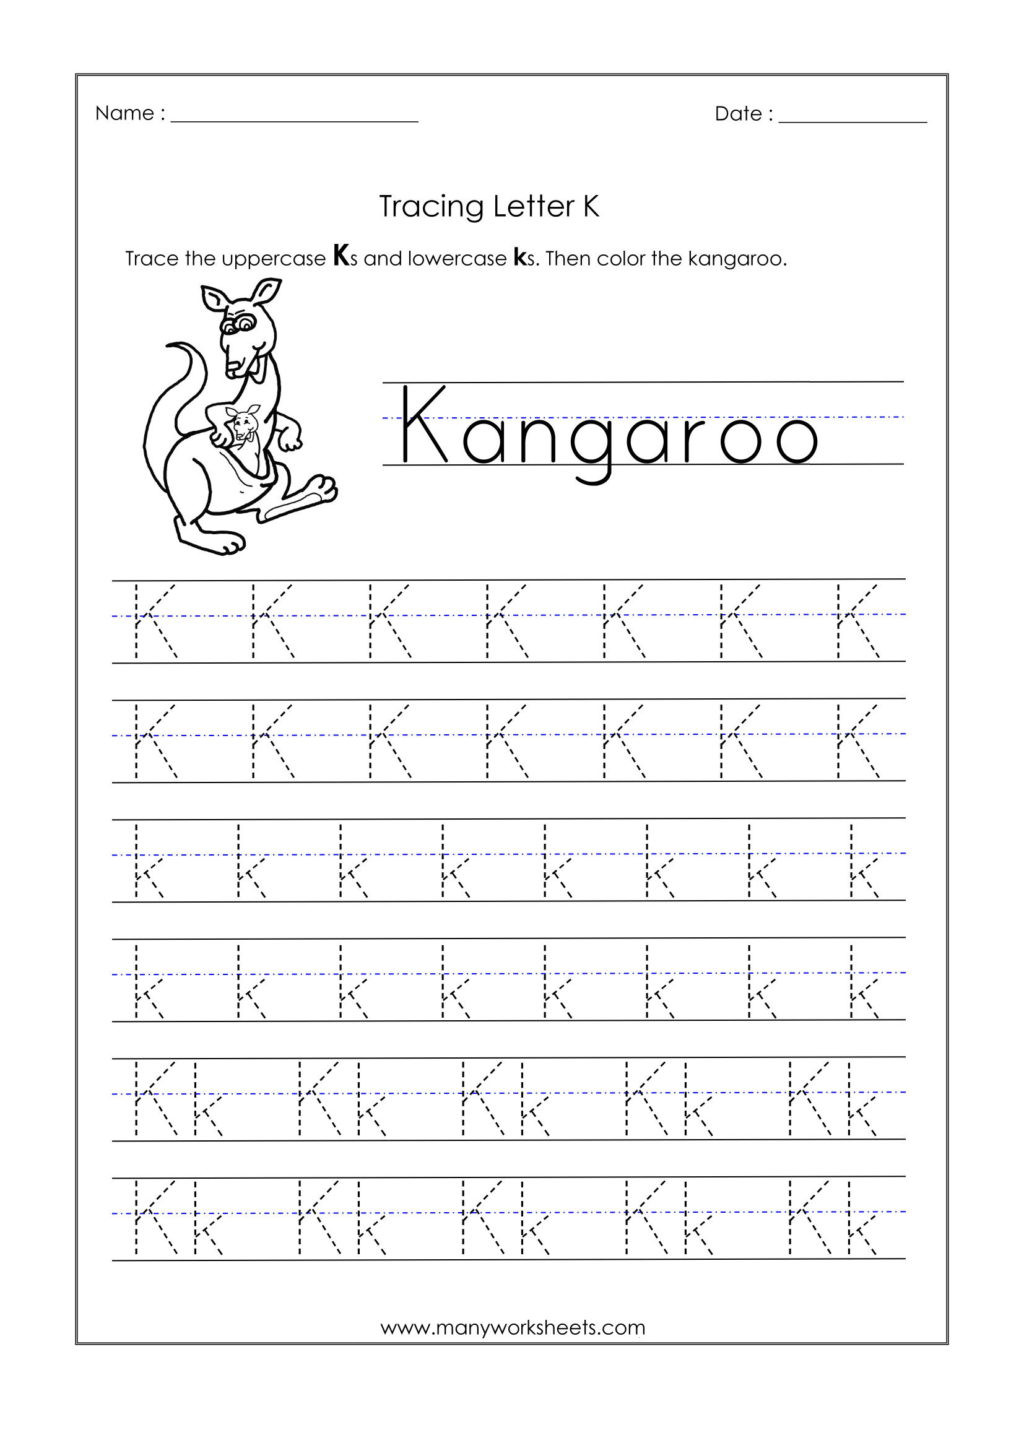 Letter K Tracing Worksheets Preschool Worksheet Worksheet Letter K Tracing Worksheets for